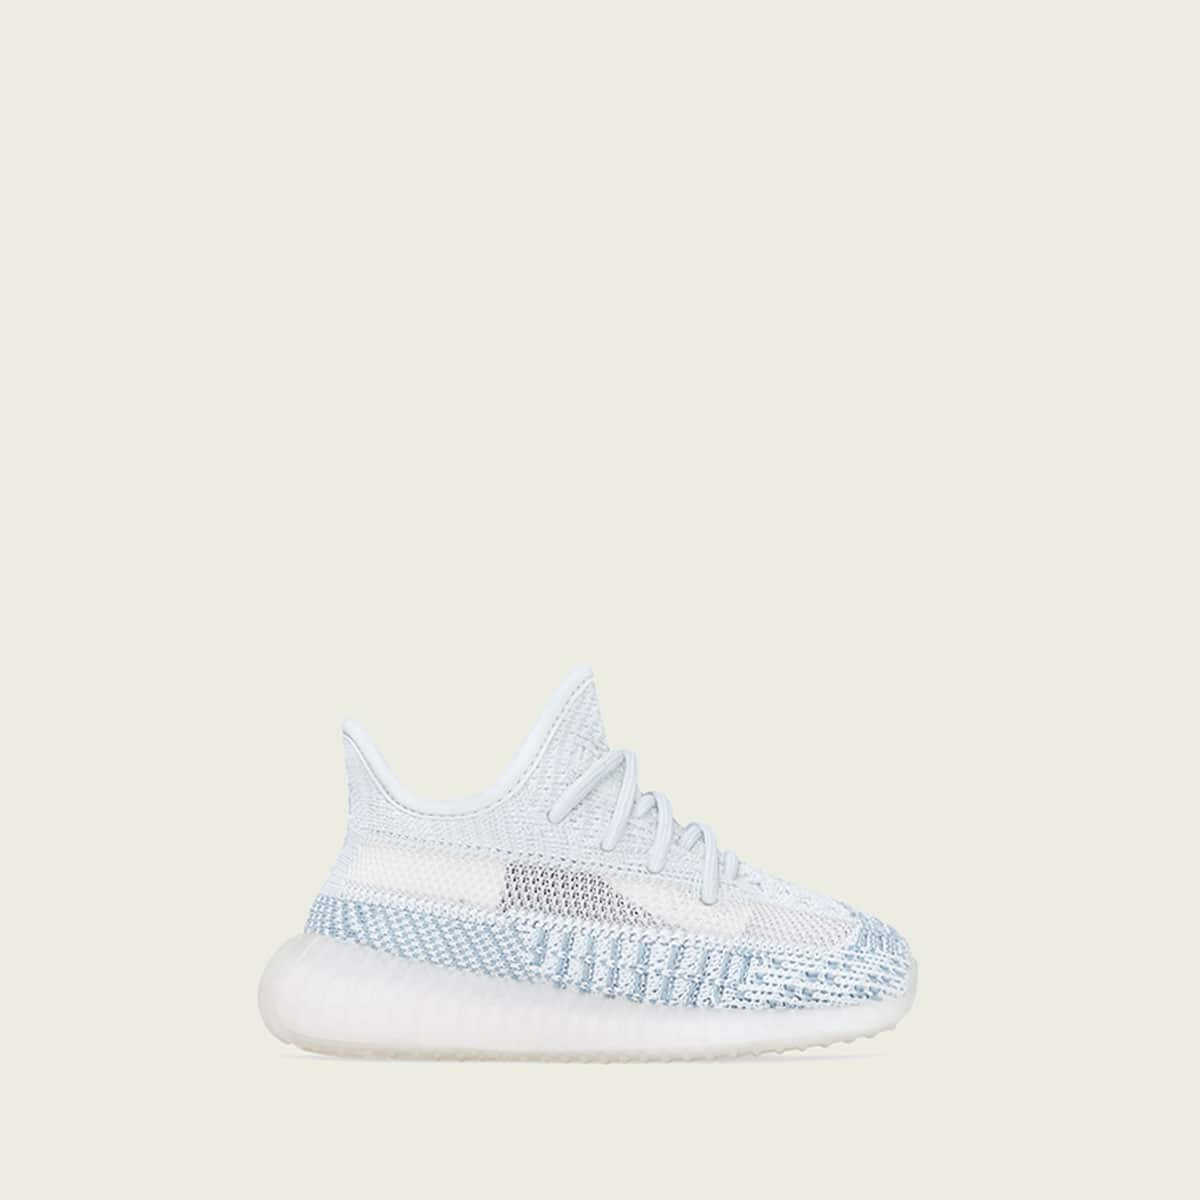 """adidas YEEZY_BOOST 350 V2""""CLOUD WHITE""""INFANT CLOUD WHITE/CLOUD WHITE/CLOUD WHITE 19FW-S_photo_large"""